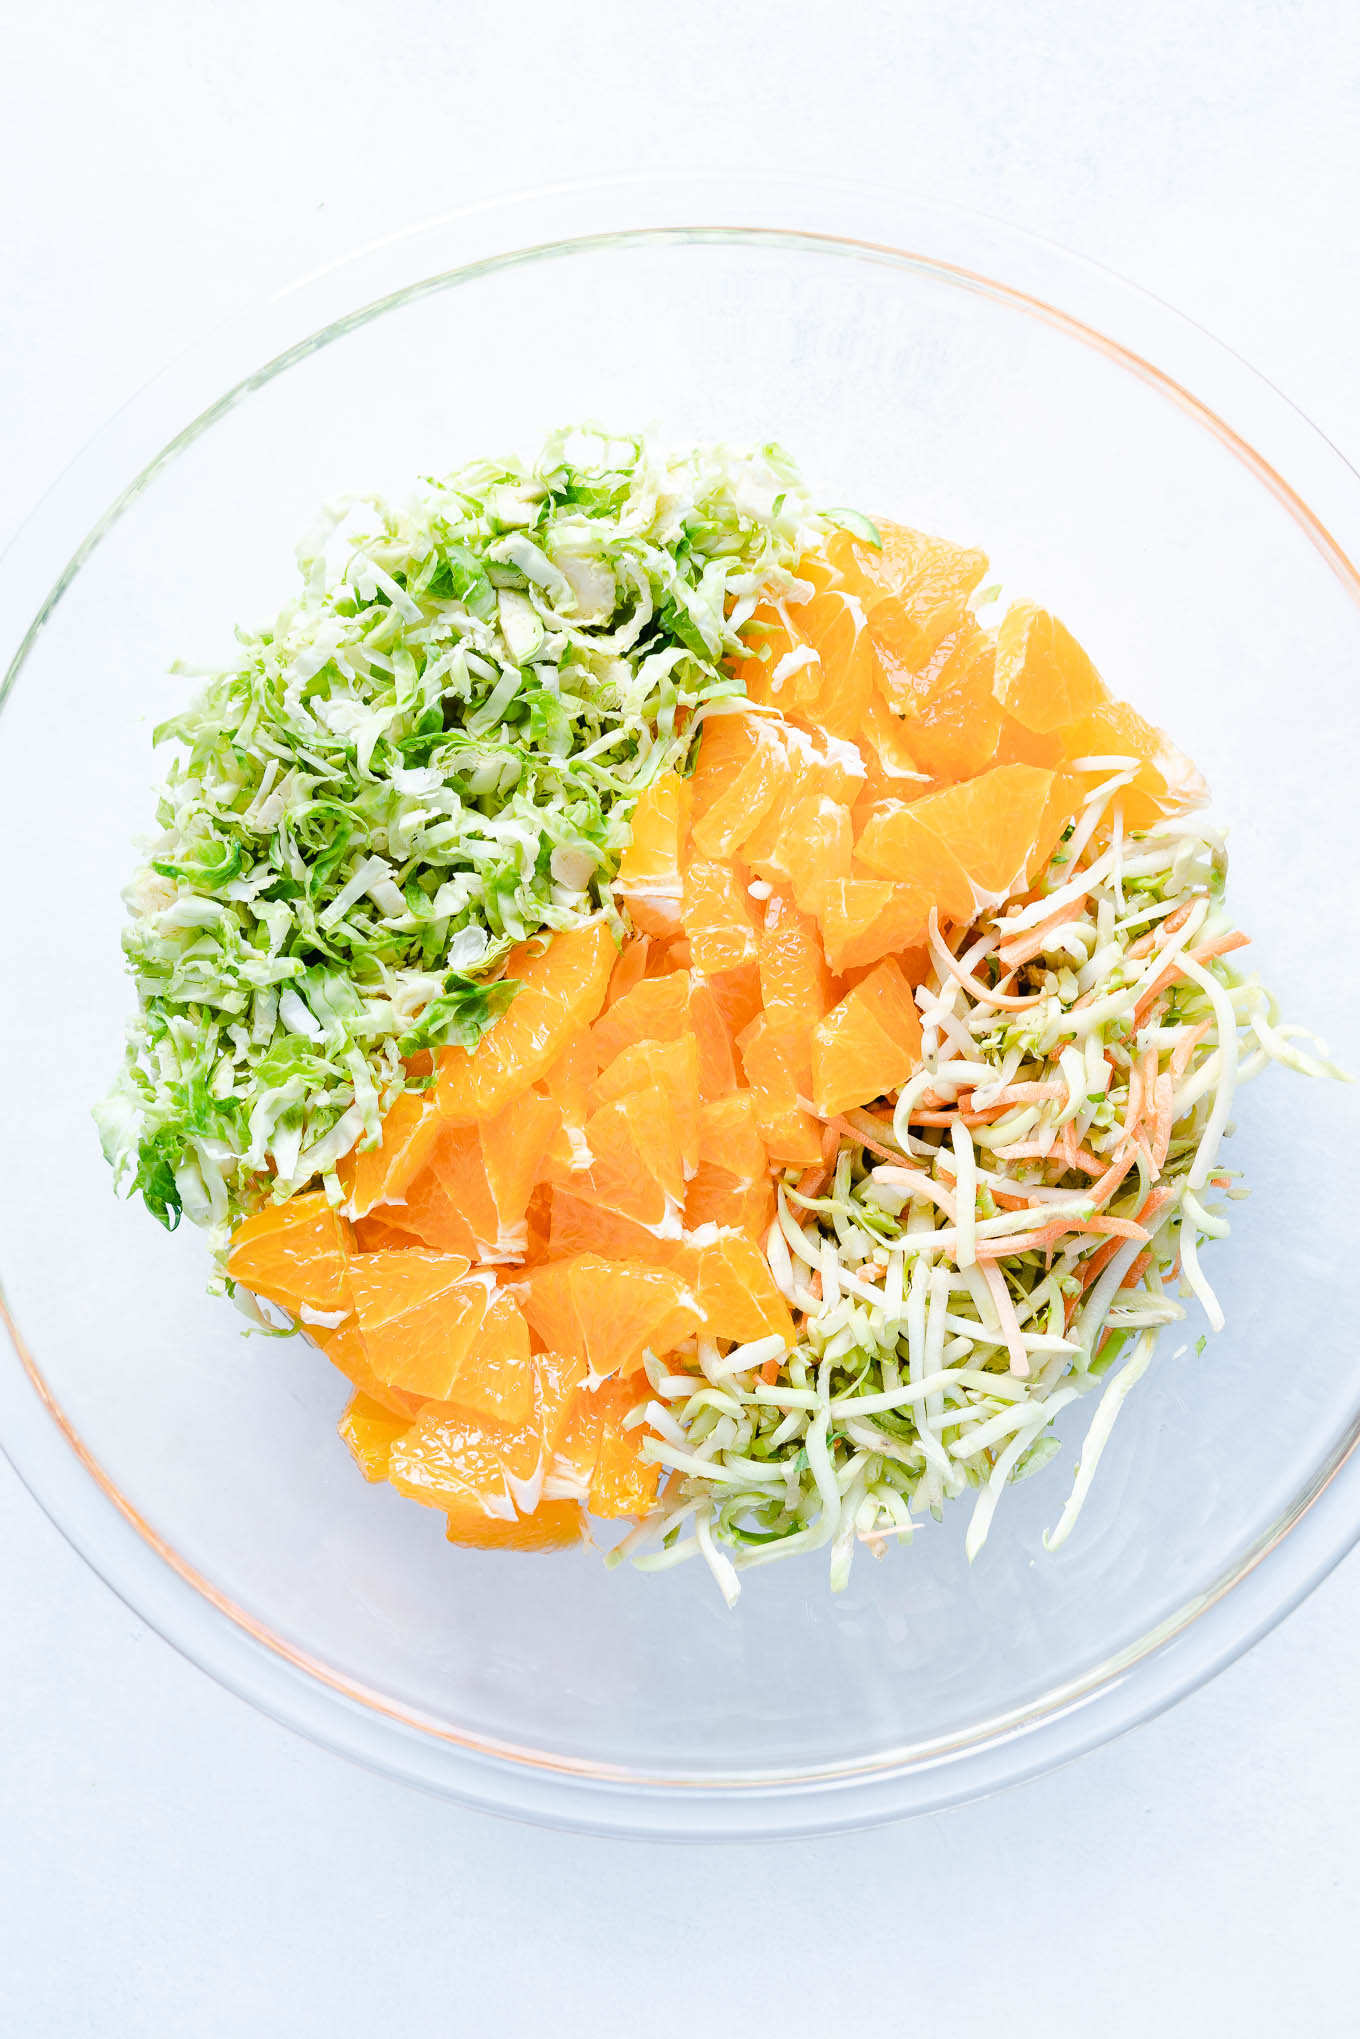 Raw Brussels Sprout Salad with Oranges - Brussels Sprouts, Oranges, Broccoli Slaw in Bowl